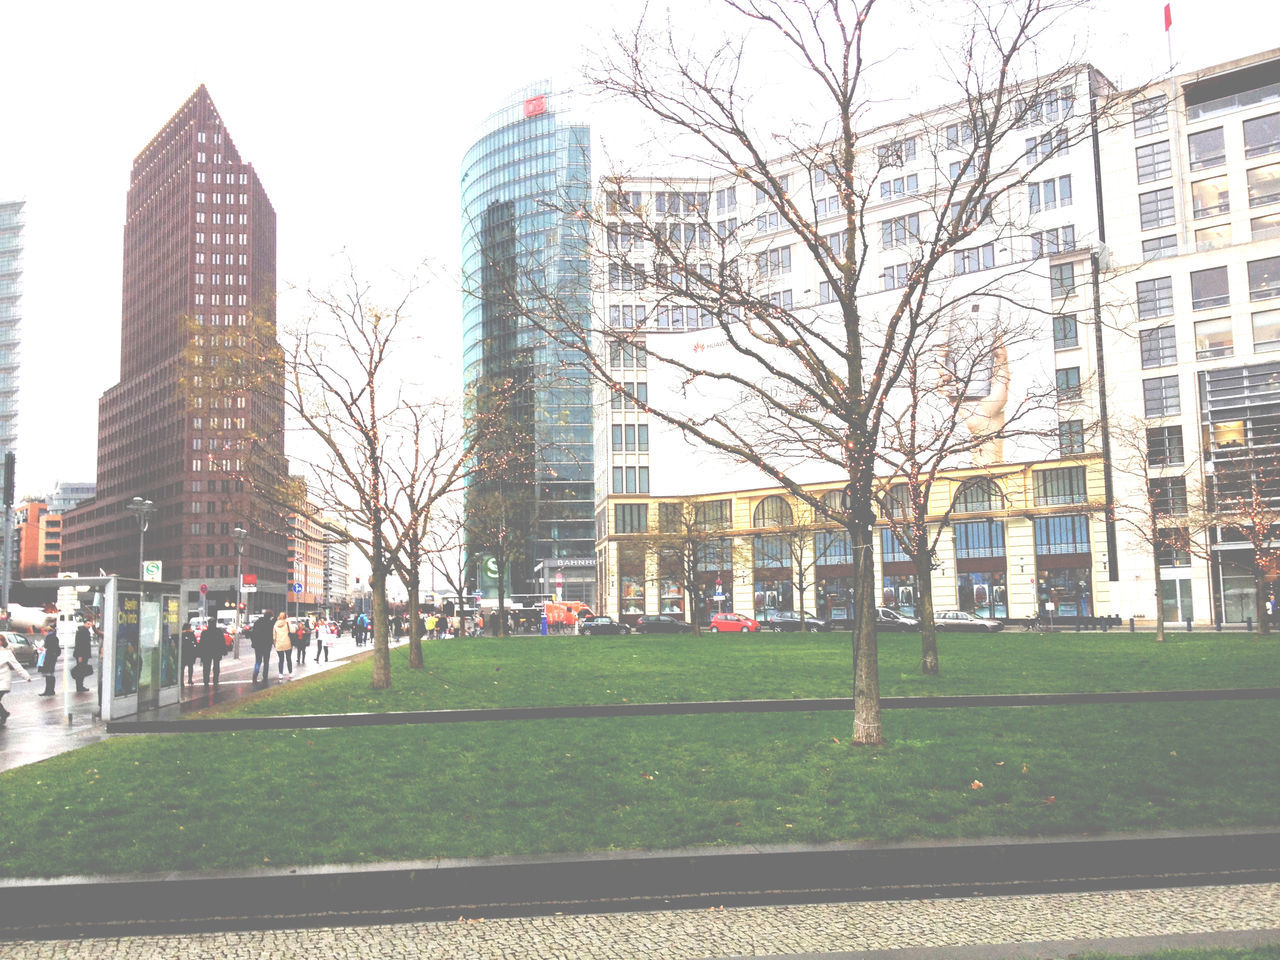 architecture, building exterior, built structure, grass, skyscraper, city, modern, tower, tree, outdoors, growth, bare tree, day, no people, tall, sky, cityscape